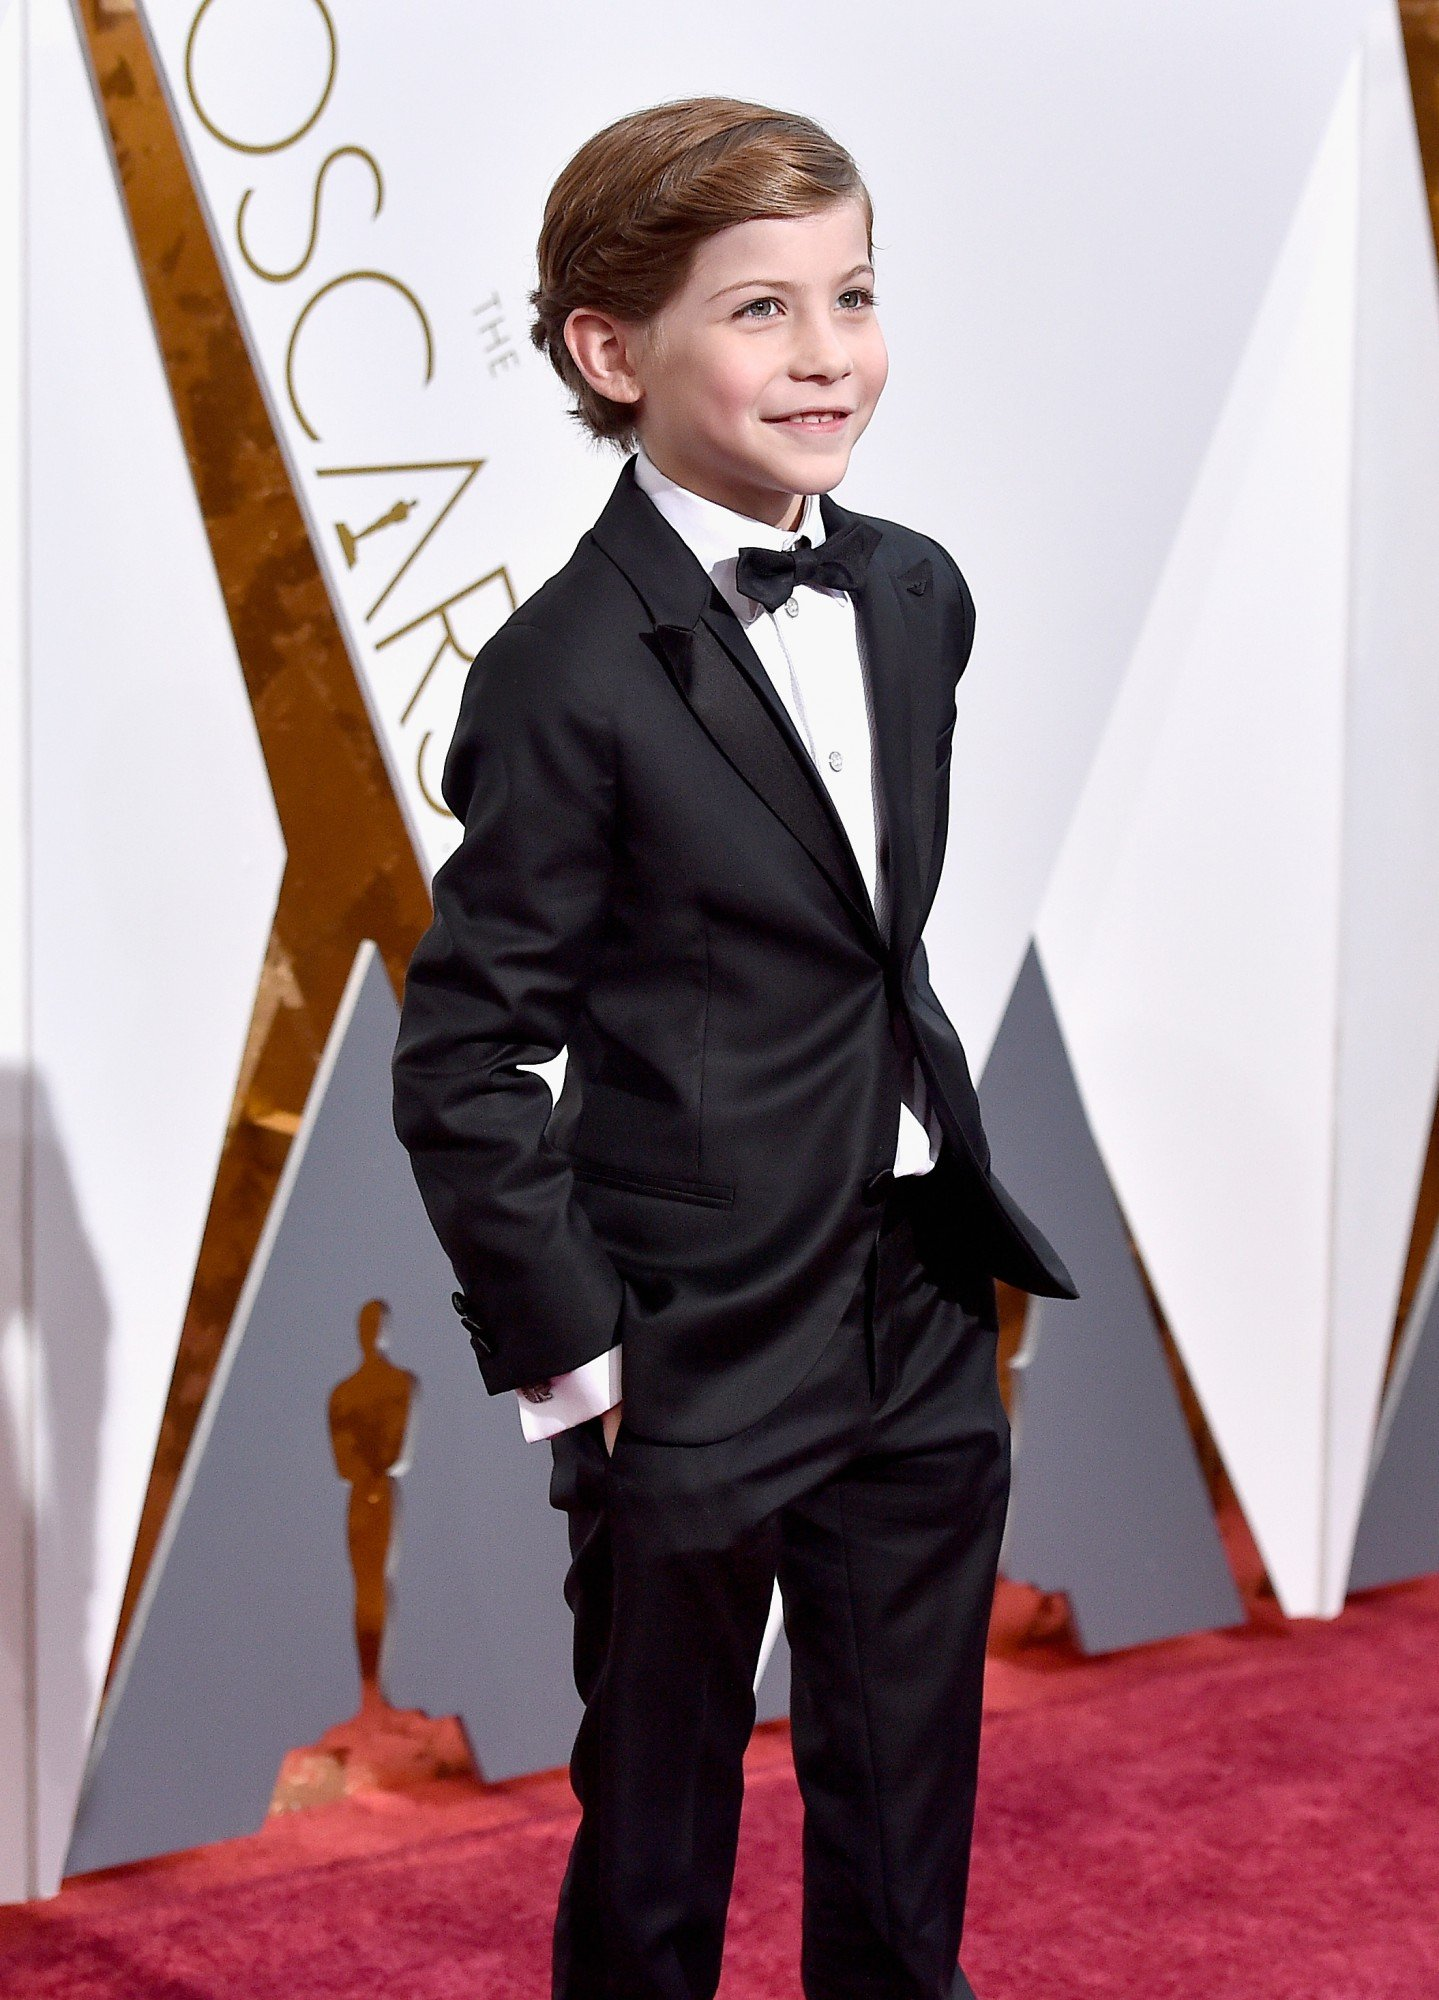 HOLLYWOOD, CA - FEBRUARY 28: Actor Jacob Tremblay attends the 88th Annual Academy Awards at Hollywood & Highland Center on February 28, 2016 in Hollywood, California. (Photo by Kevork Djansezian/Getty Images)